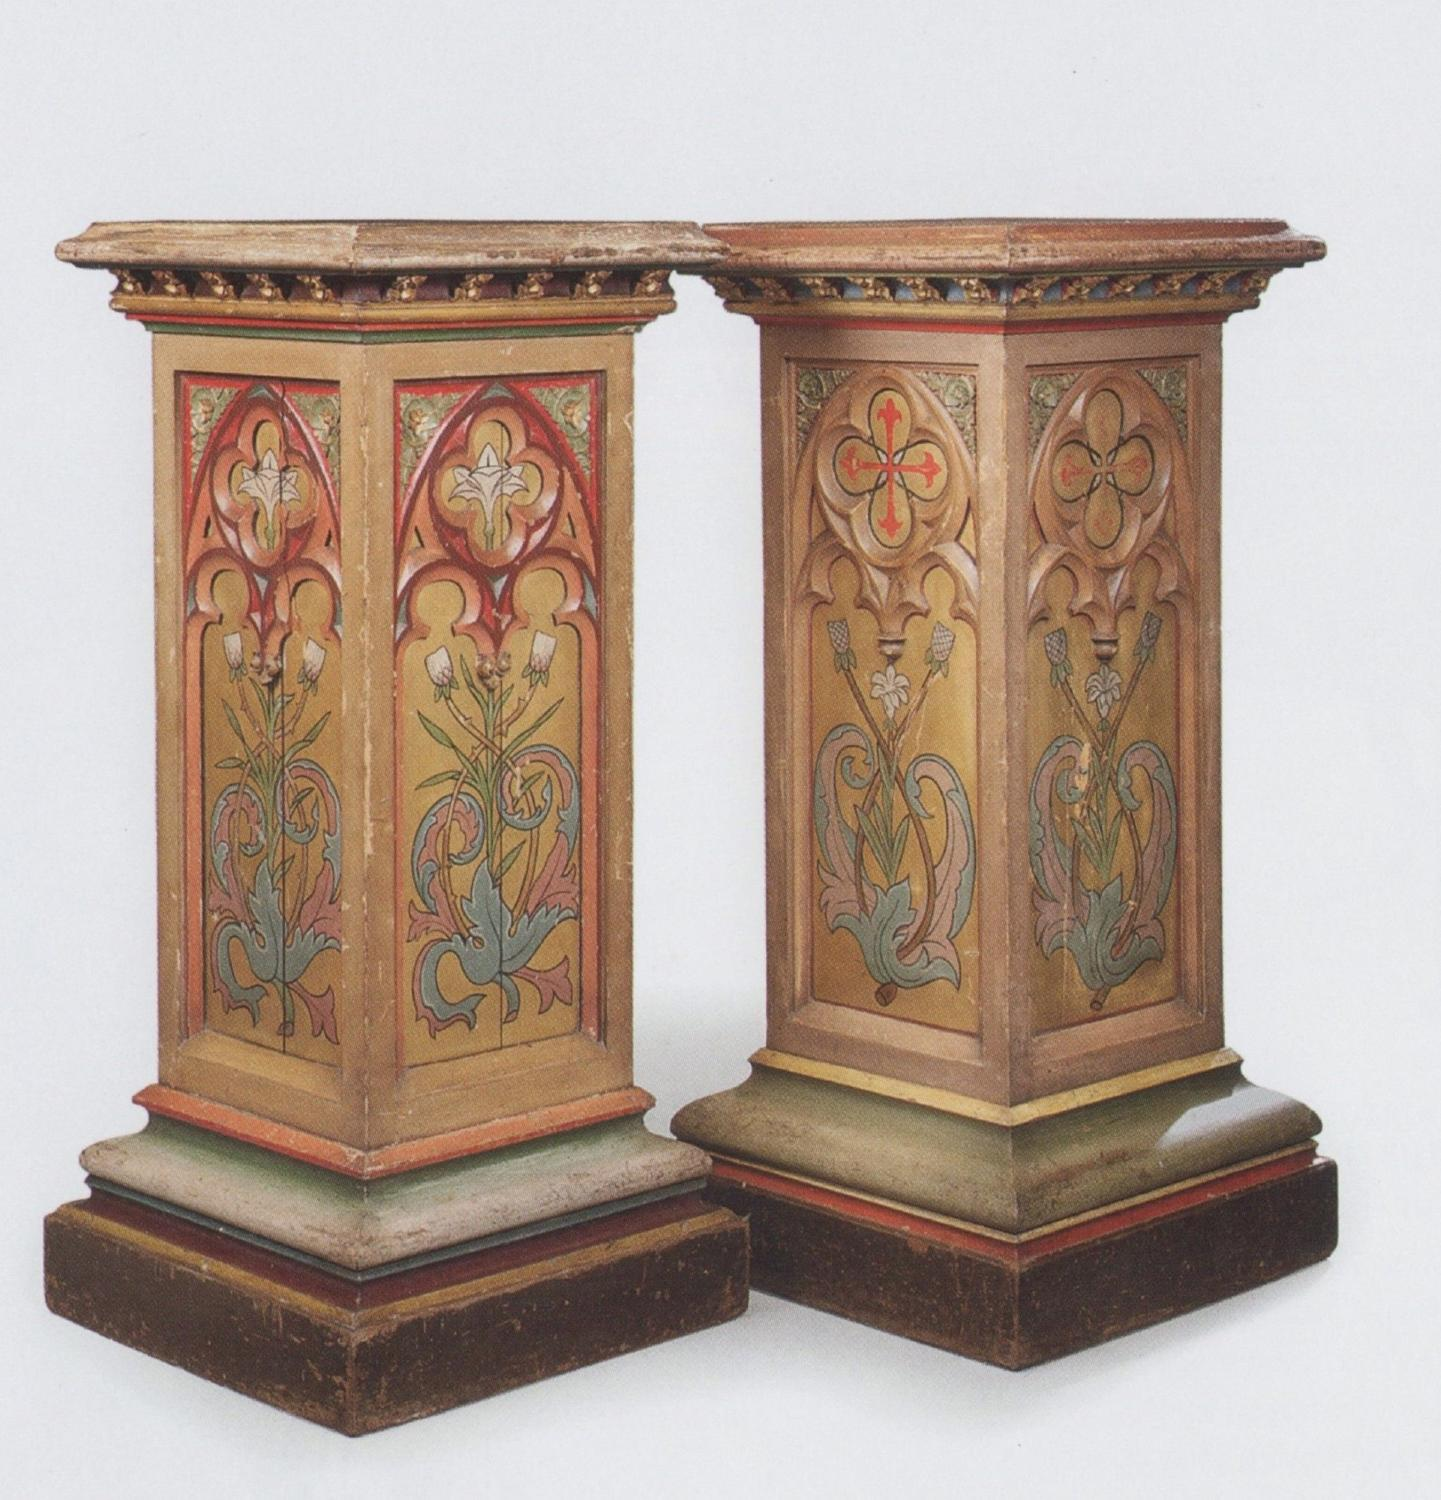 C19th polychrome decorated pedestals